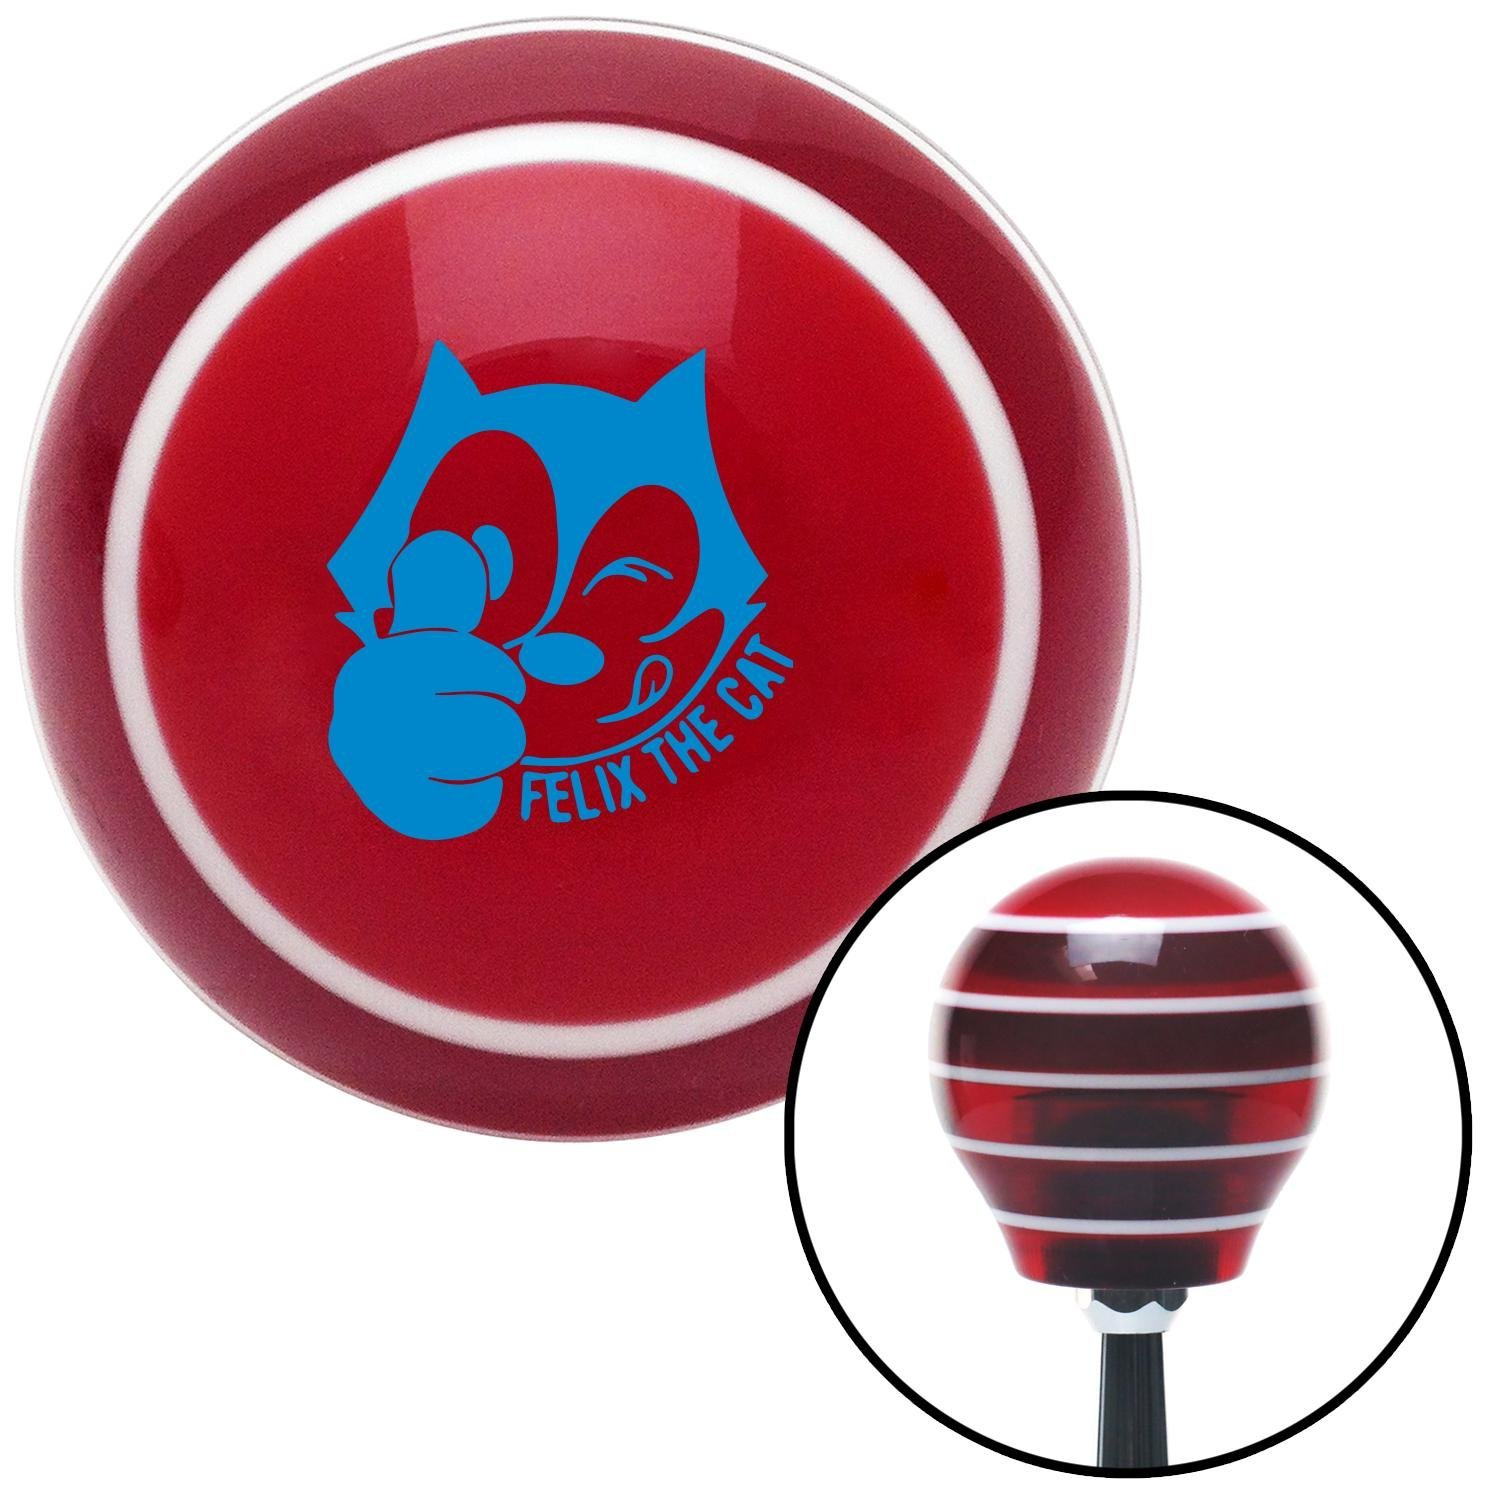 Blue Felix The Cat Thumbs Up American Shifter 116613 Red Stripe Shift Knob with M16 x 1.5 Insert